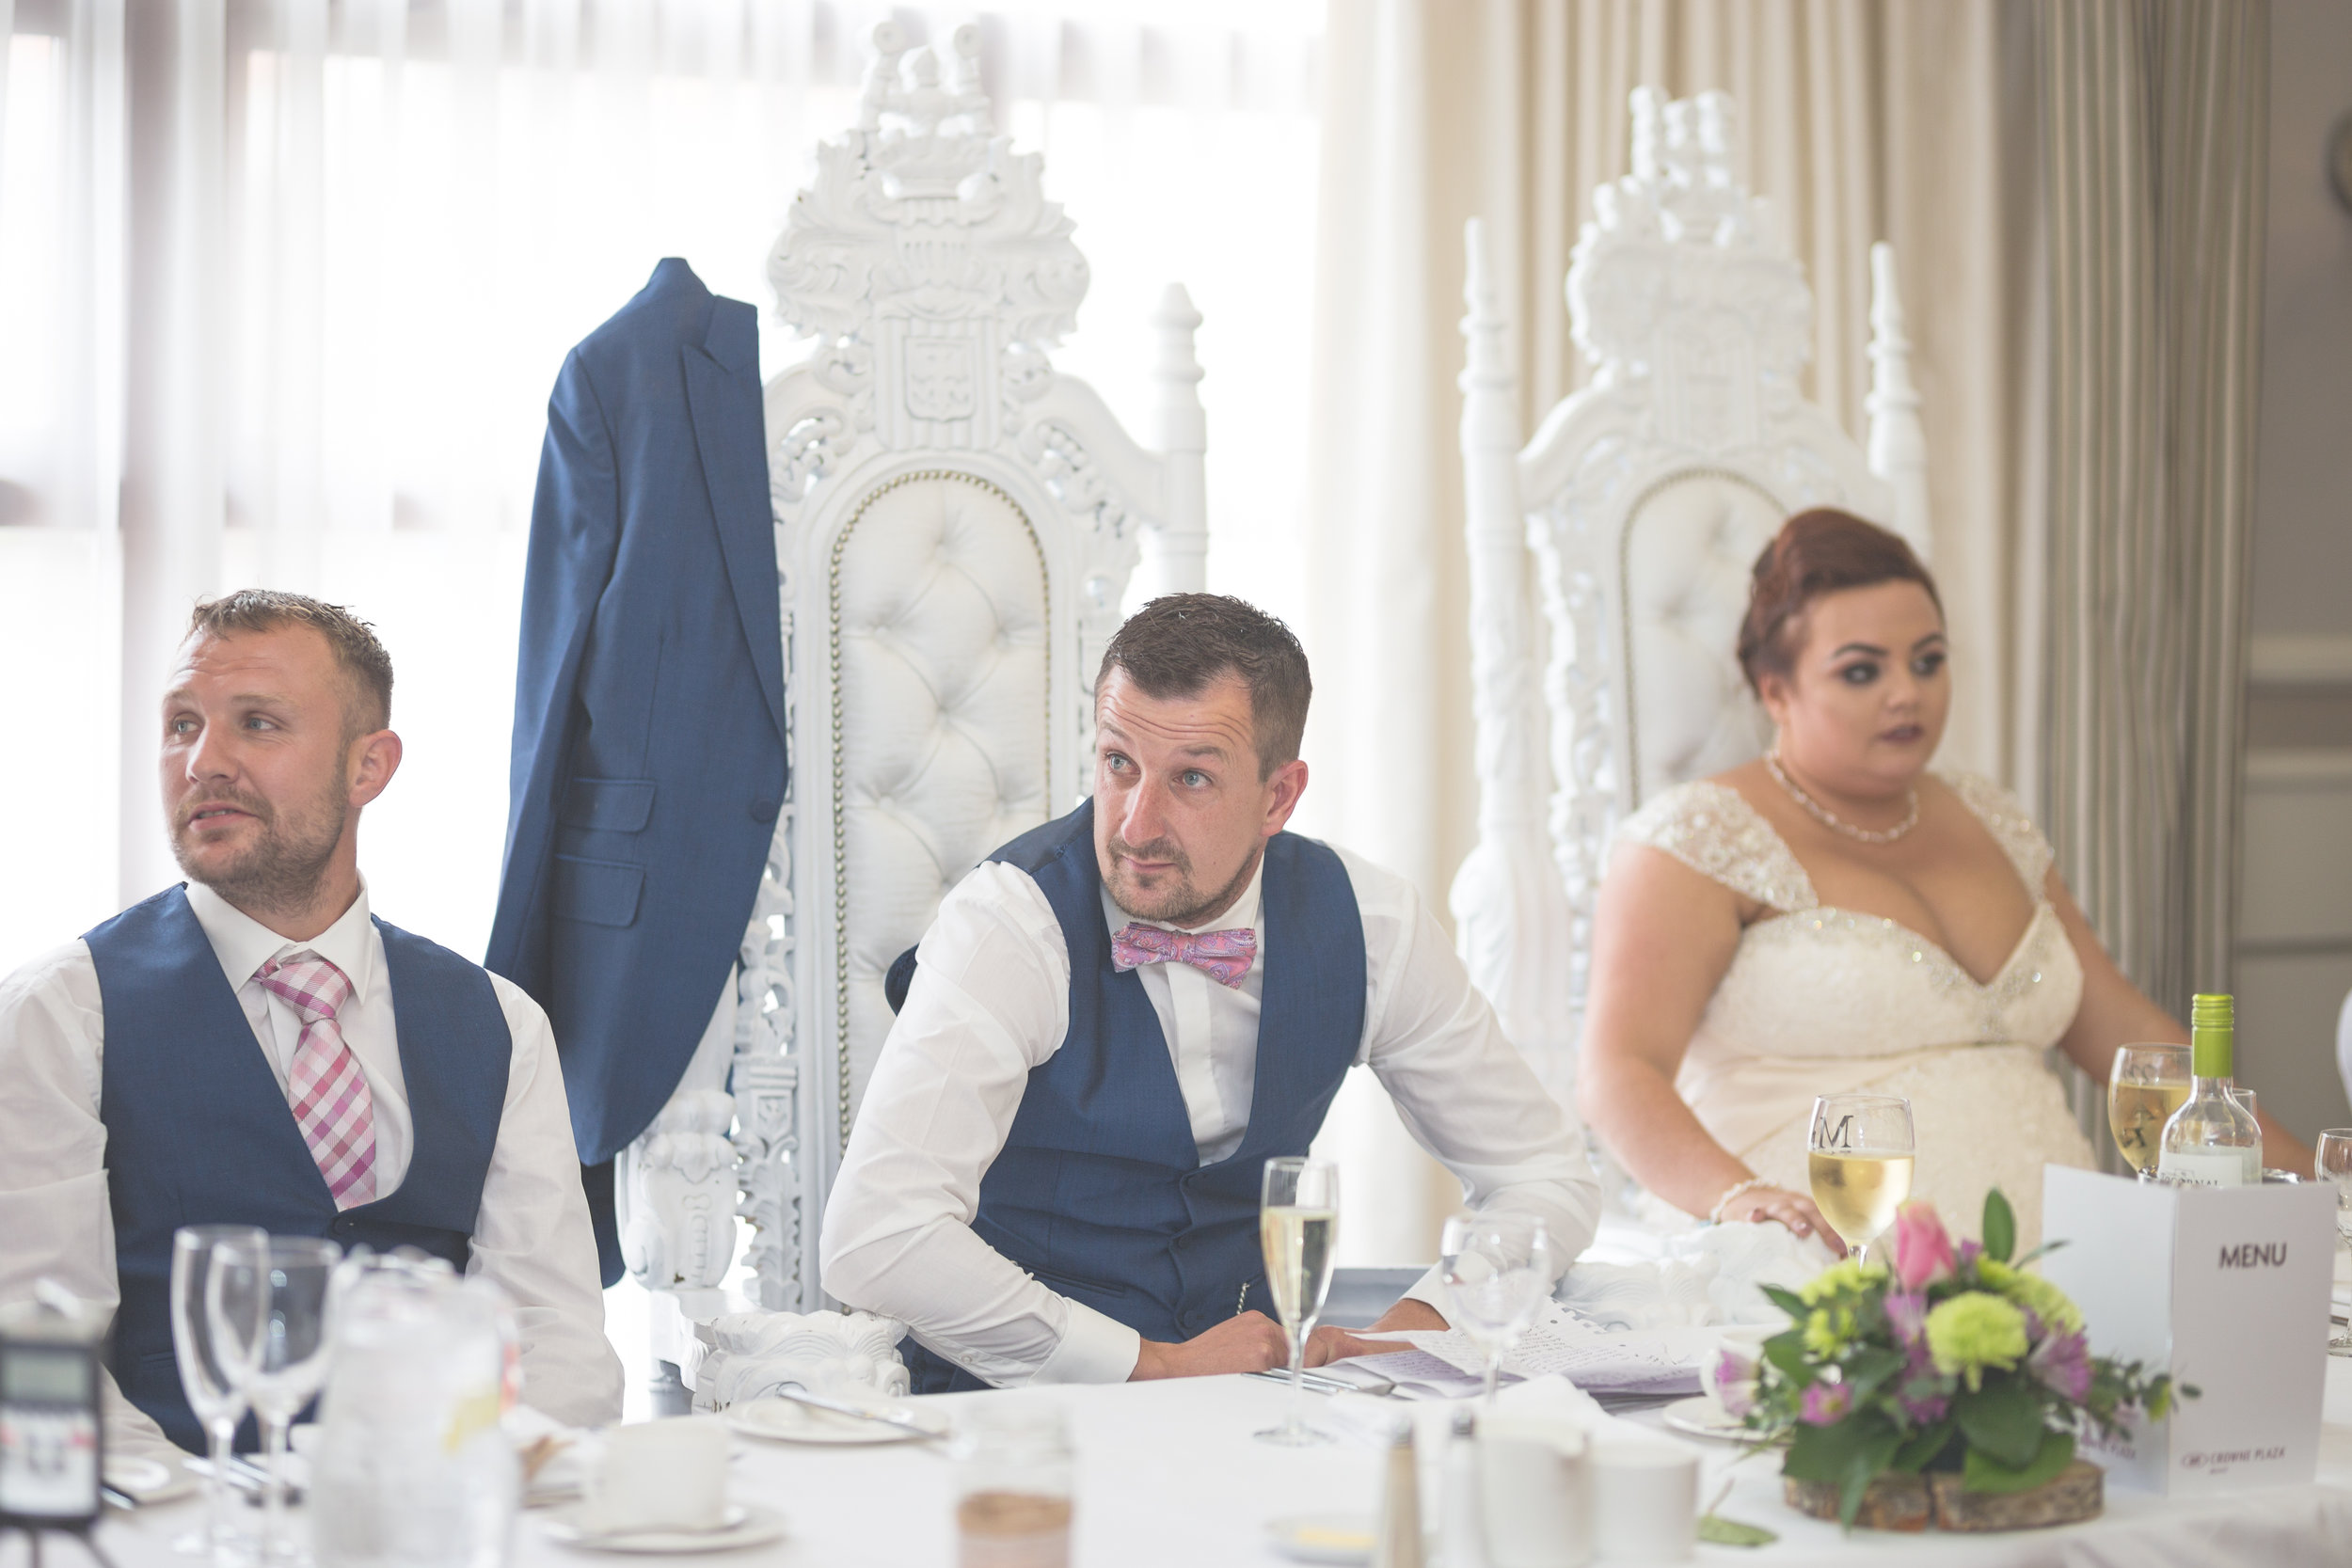 Antoinette & Stephen - Speeches | Brian McEwan Photography | Wedding Photographer Northern Ireland 45.jpg